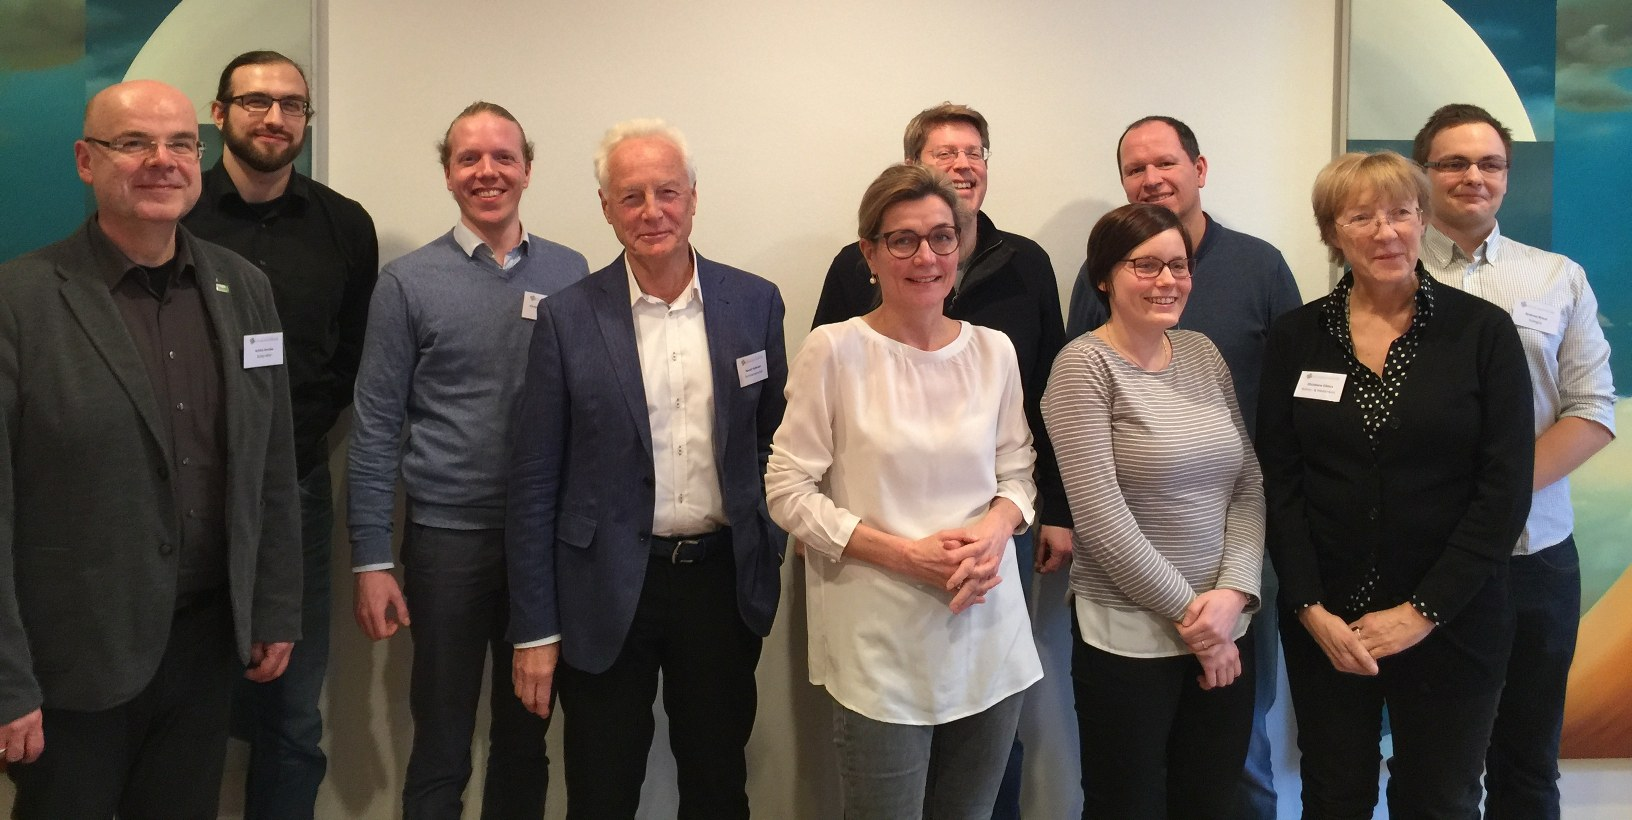 The elected board of the PhD programme